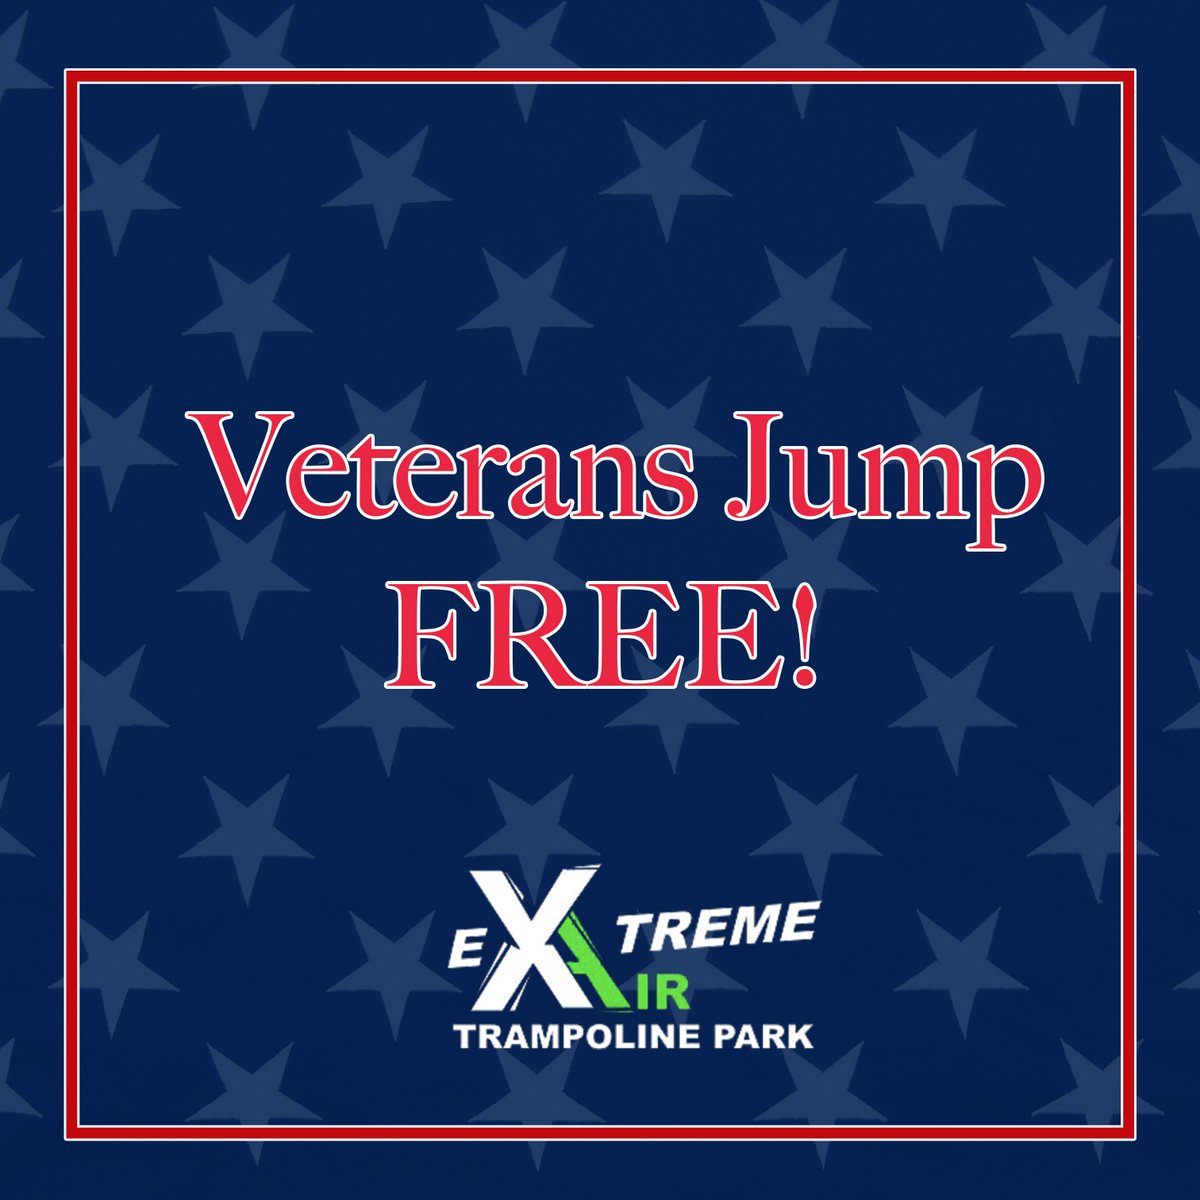 Extreme Air Trampoline Parks is proud to announce a new company-wide policy. As a thank you for their service, we will now allow active military members and veterans to jump for free! PLUS, their group (must be on one bill) will jump for 50% off. #ExtremeAir #veterandiscount